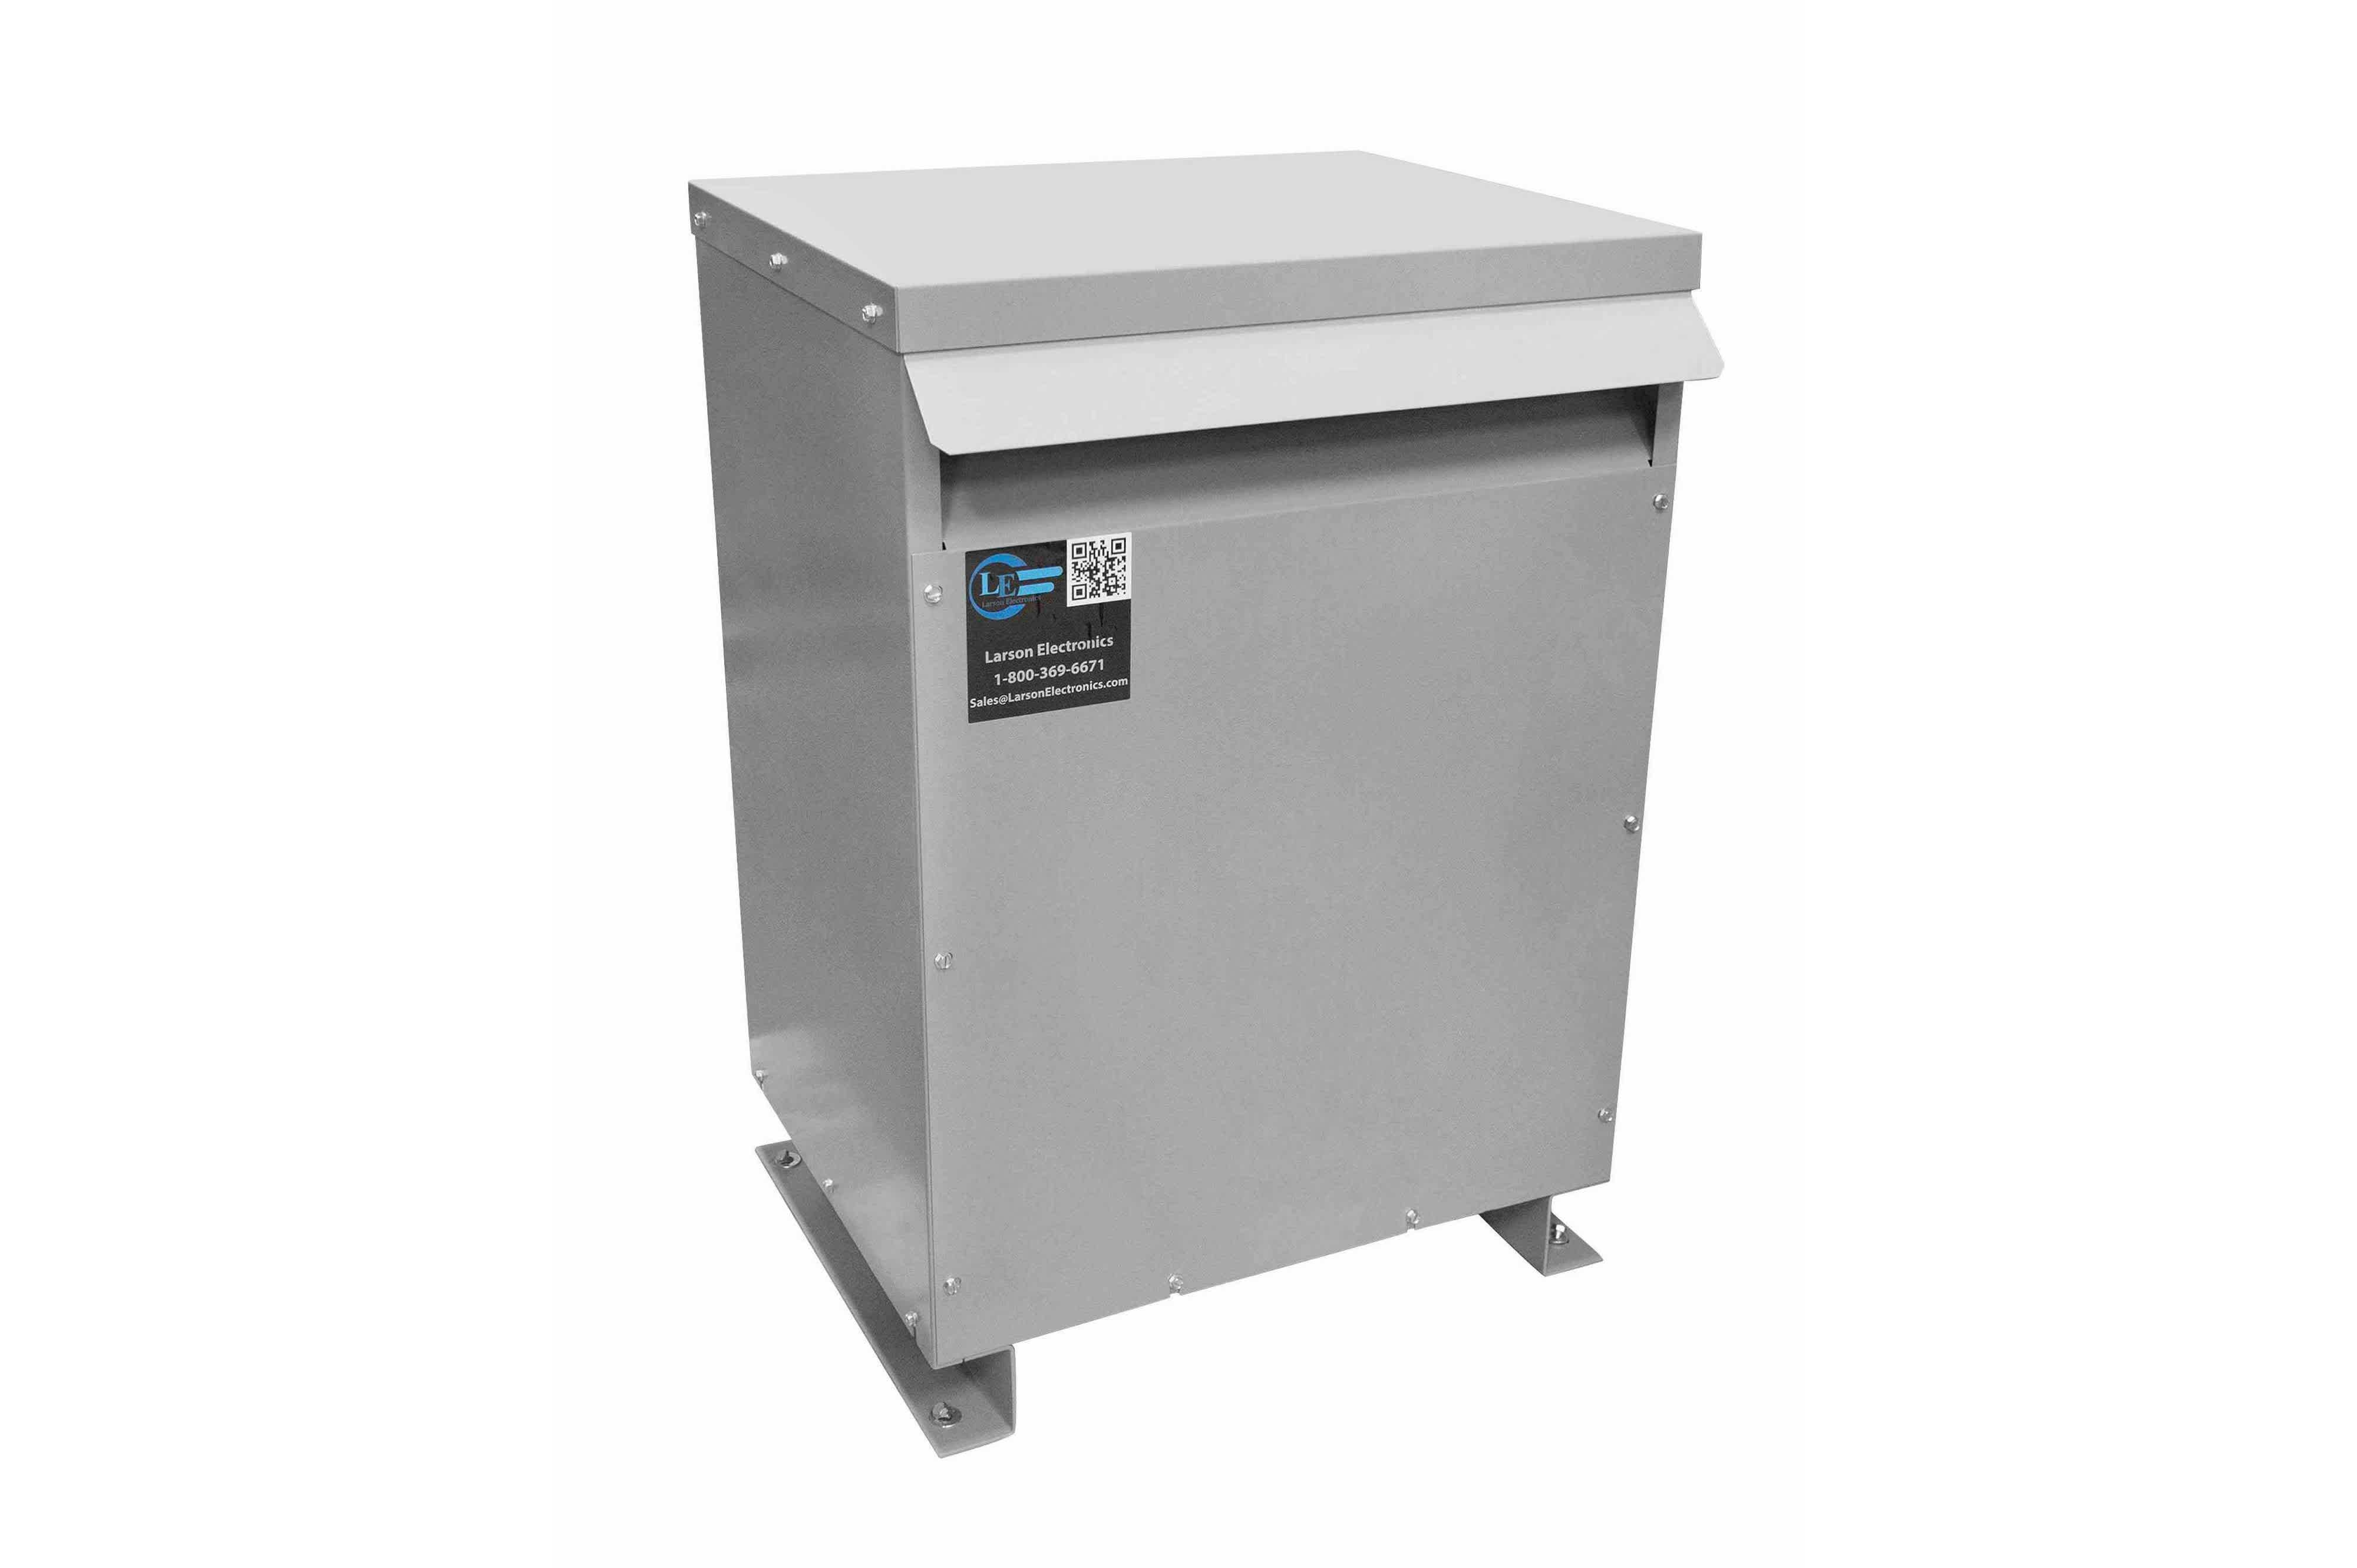 12 kVA 3PH Isolation Transformer, 460V Wye Primary, 380V Delta Secondary, N3R, Ventilated, 60 Hz